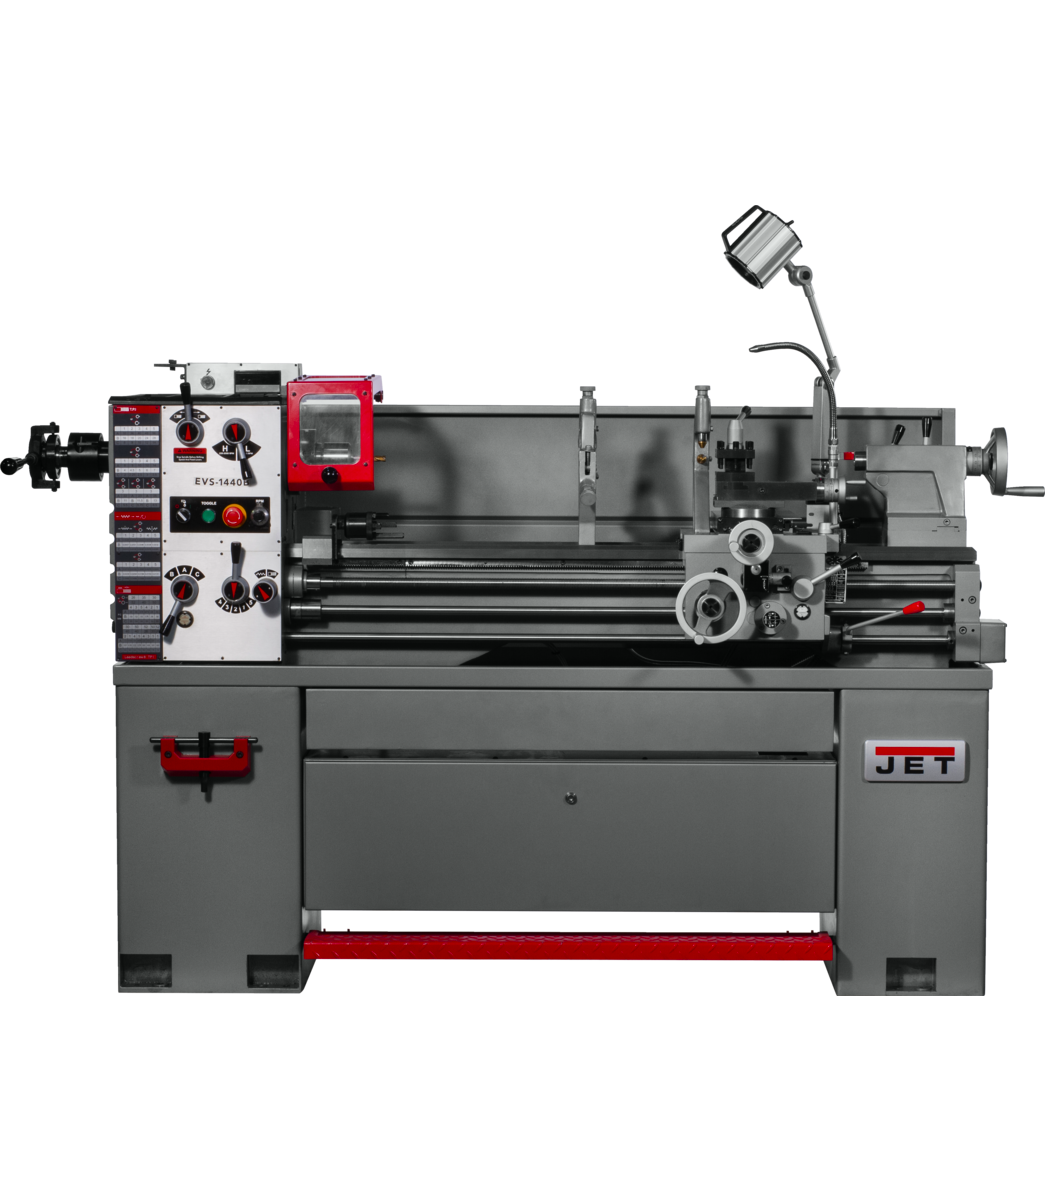 EVS-1440 Electronic Variable Speed lathe with  Newall DP700 DRO and Collet Closer, 3HP